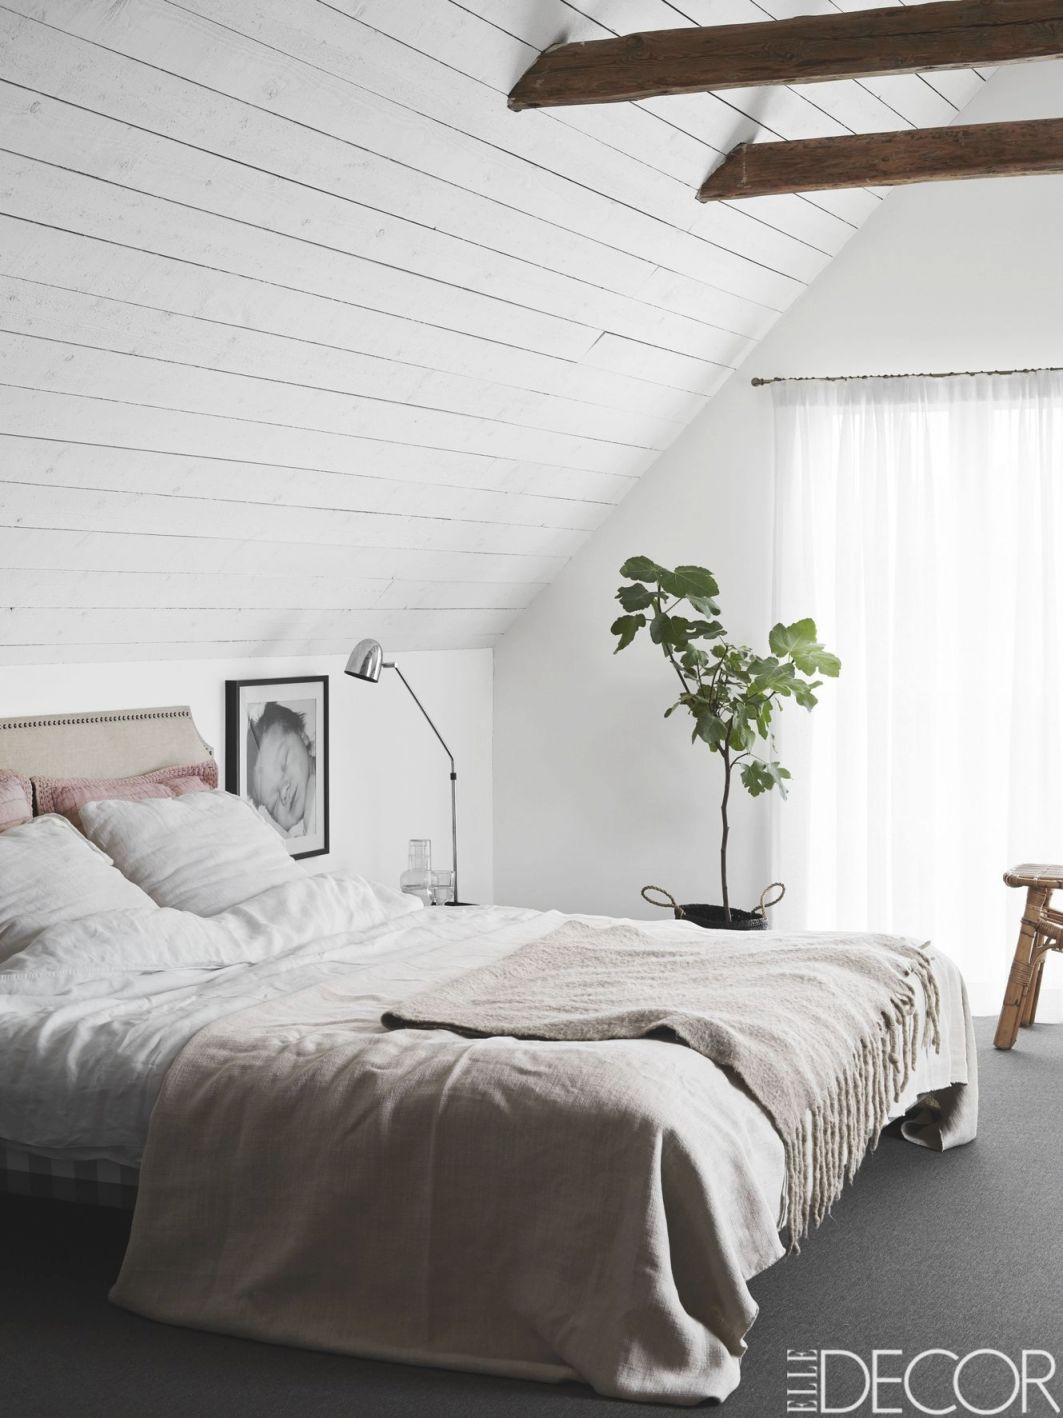 55 Small Bedroom Design Ideas - Decorating Tips For Small with regard to Beautiful Decoration For Bedrooms Ideas